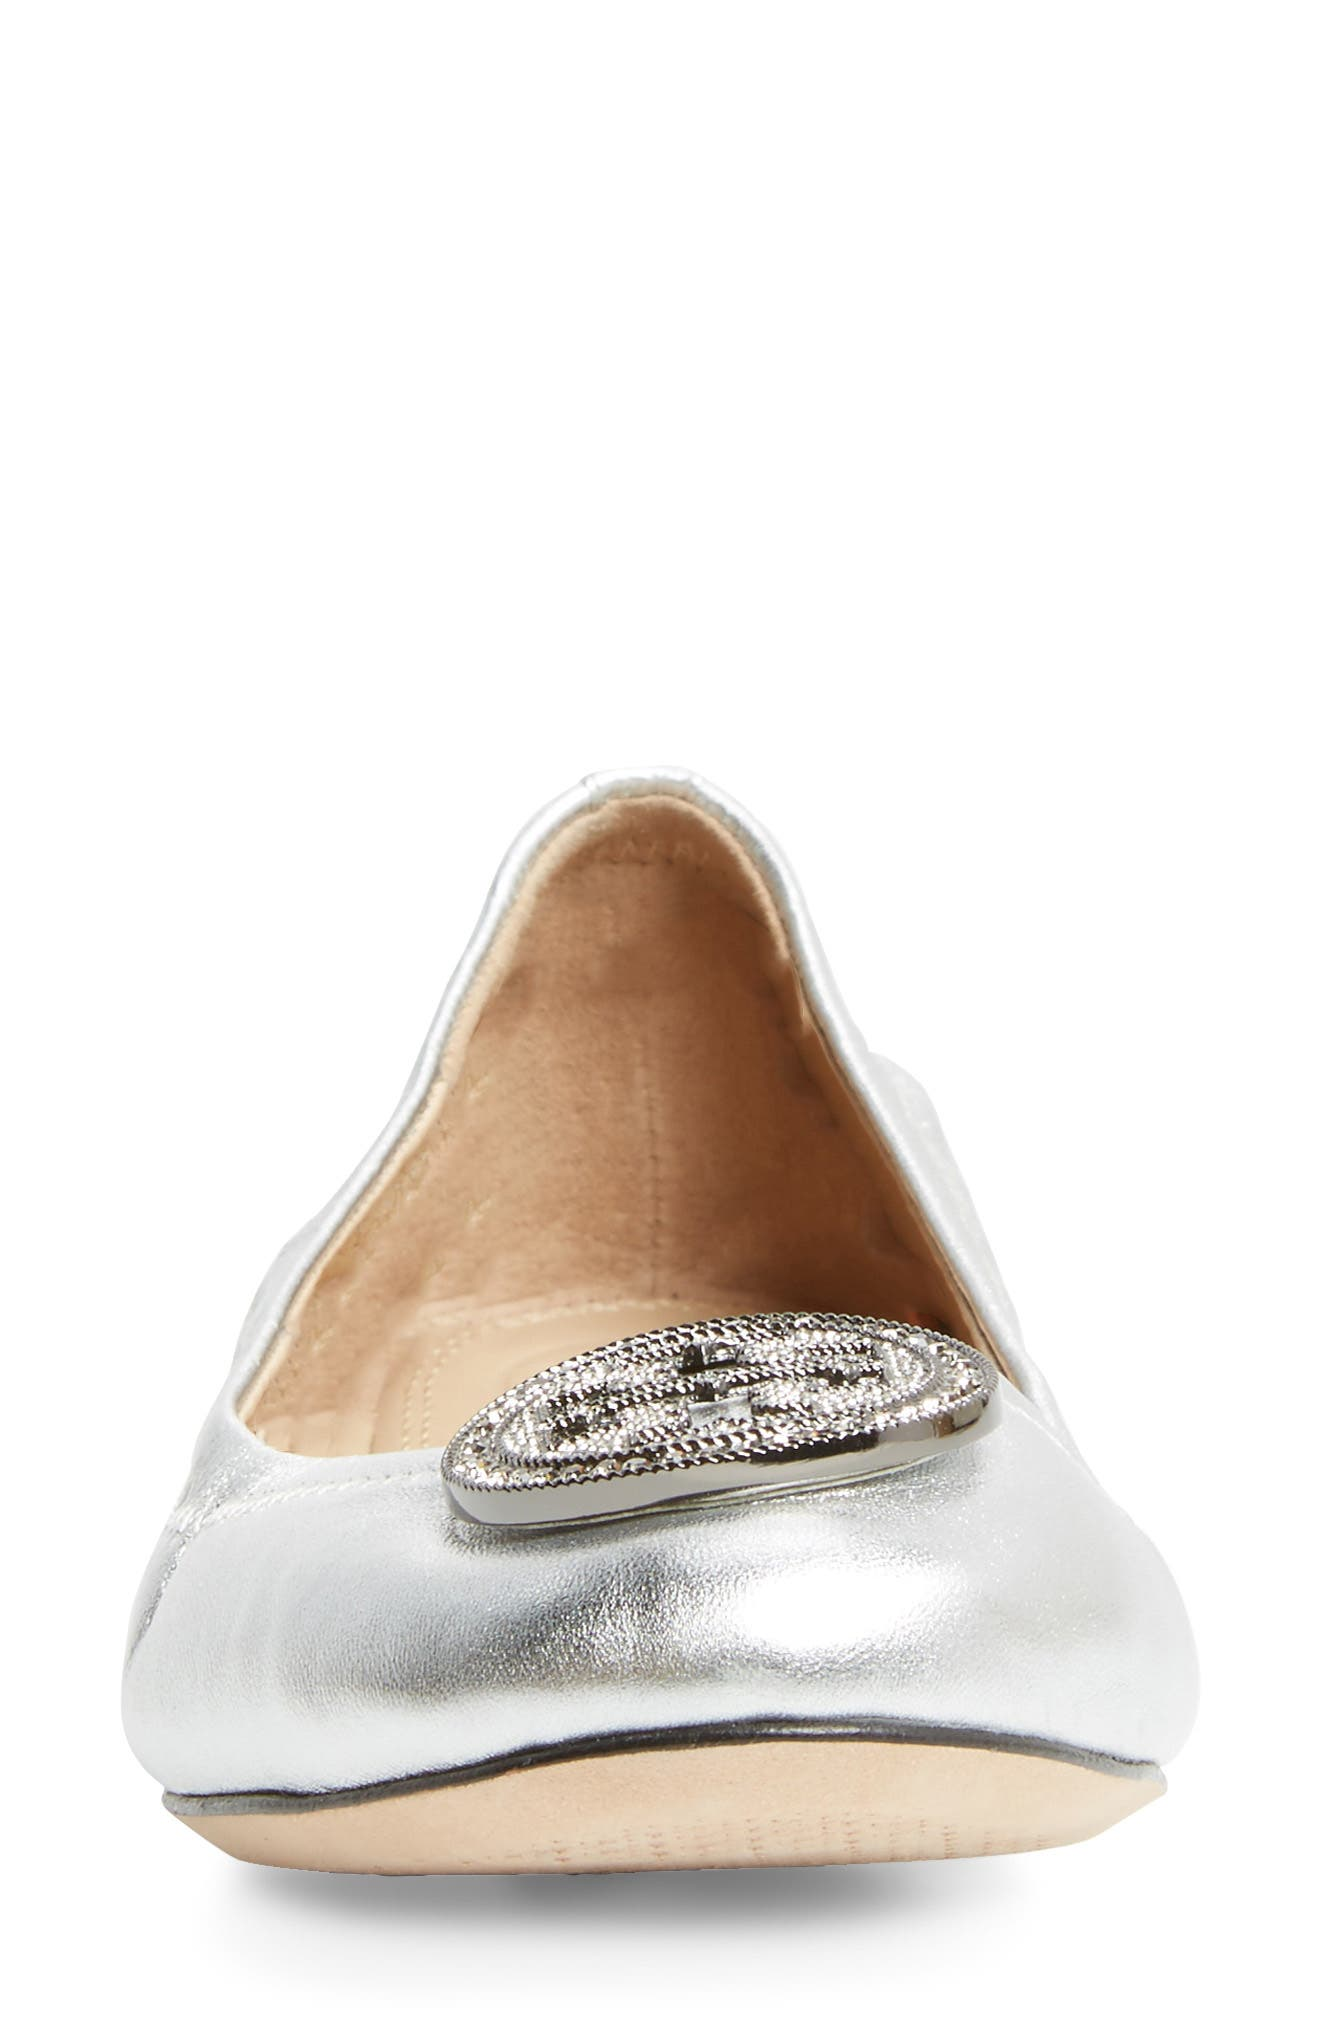 Liana Ballet Flat,                             Alternate thumbnail 11, color,